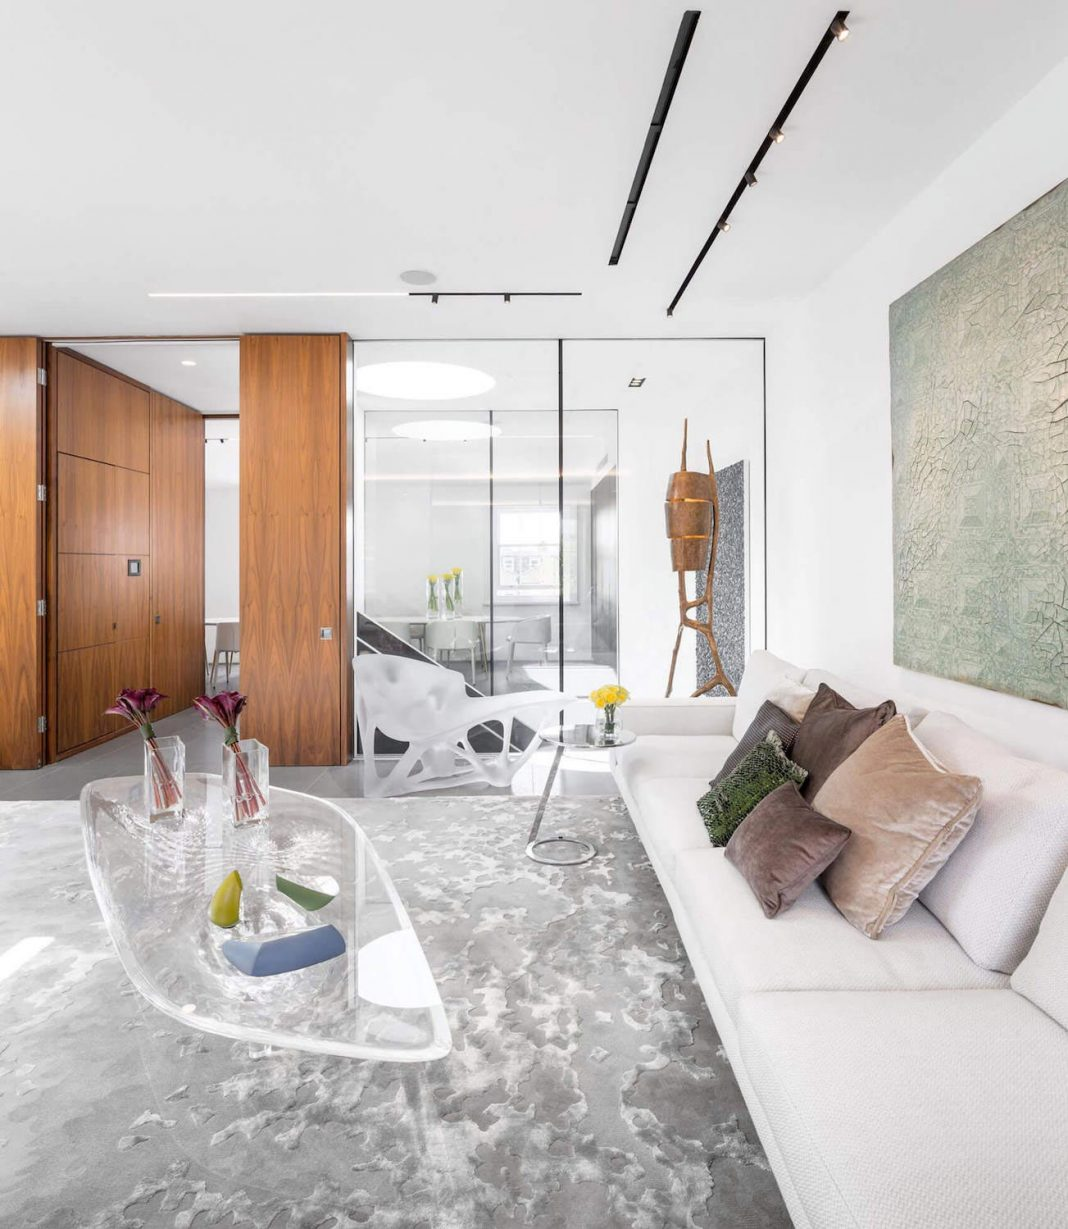 Three floors penthouse in London for a young art-collector couple